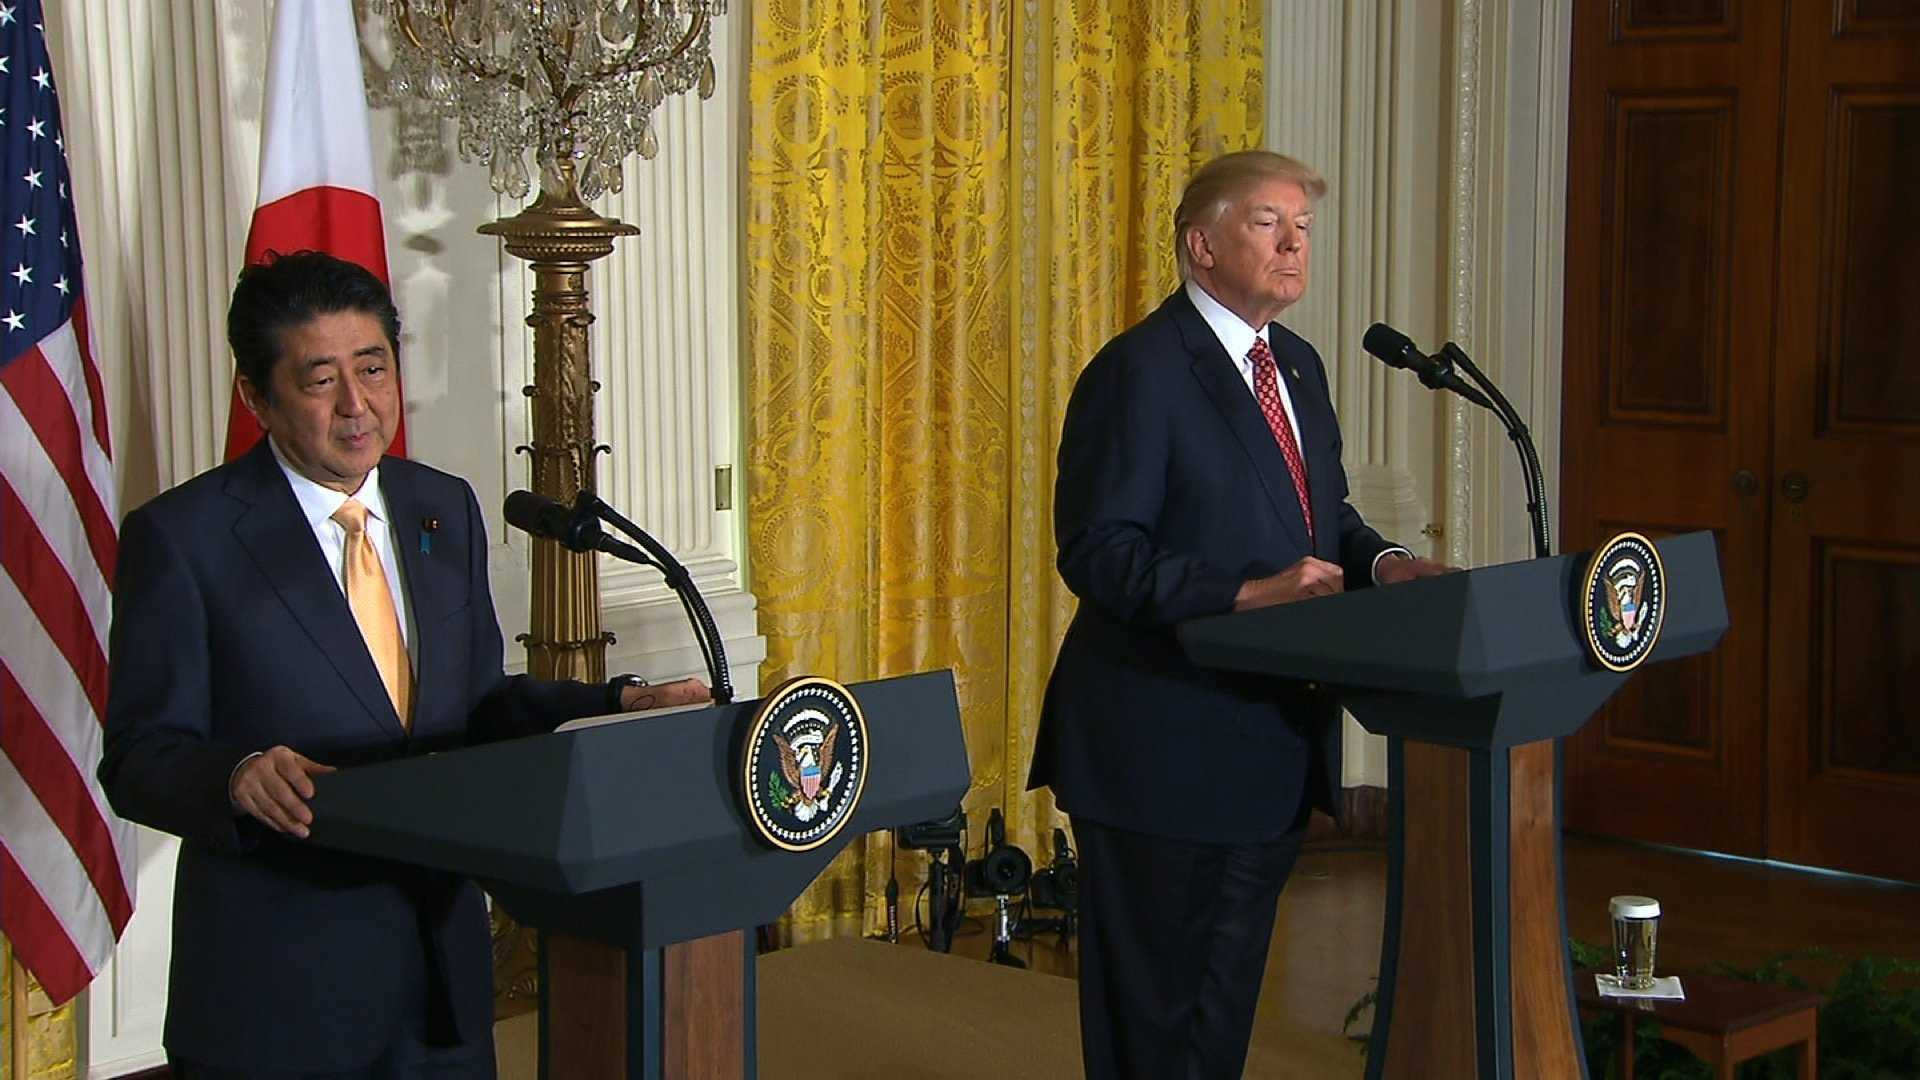 President Donald Trump and Japanese Prime Minister Shinzo Abe hold a joint press conference Friday, Feb. 10, 2017.